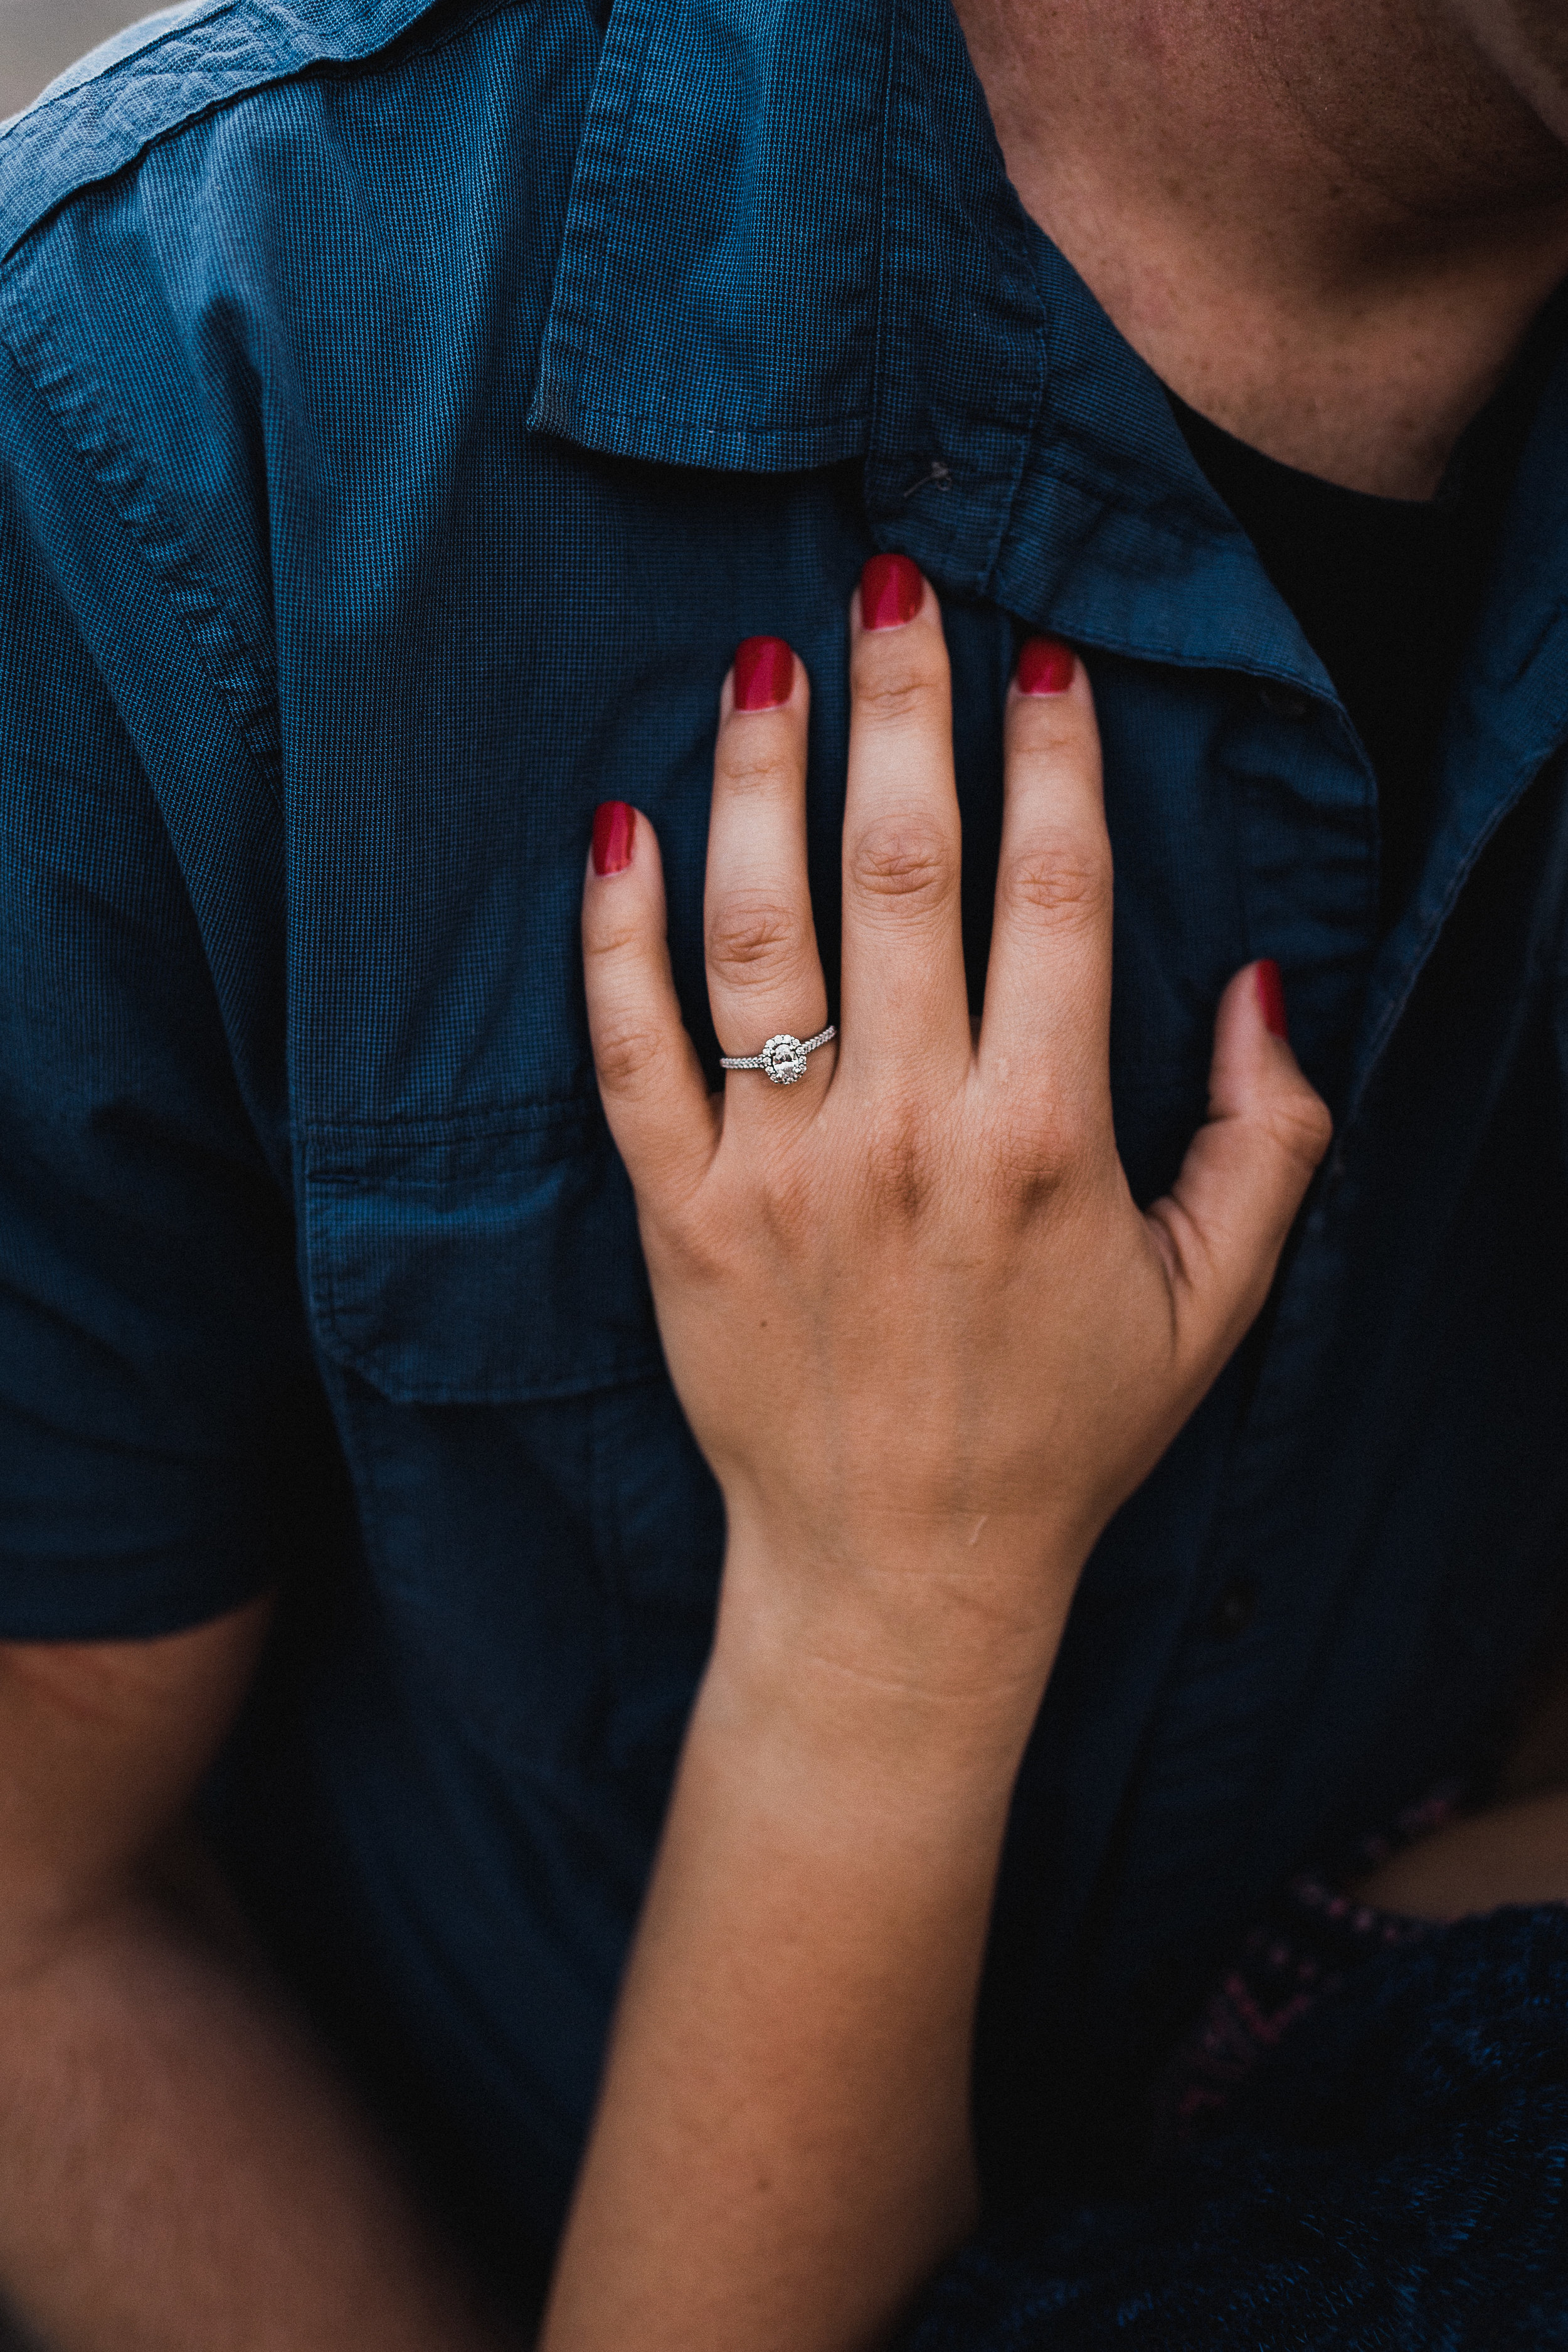 Woman places her hand on her fiance's chest and shows her engagement ring.